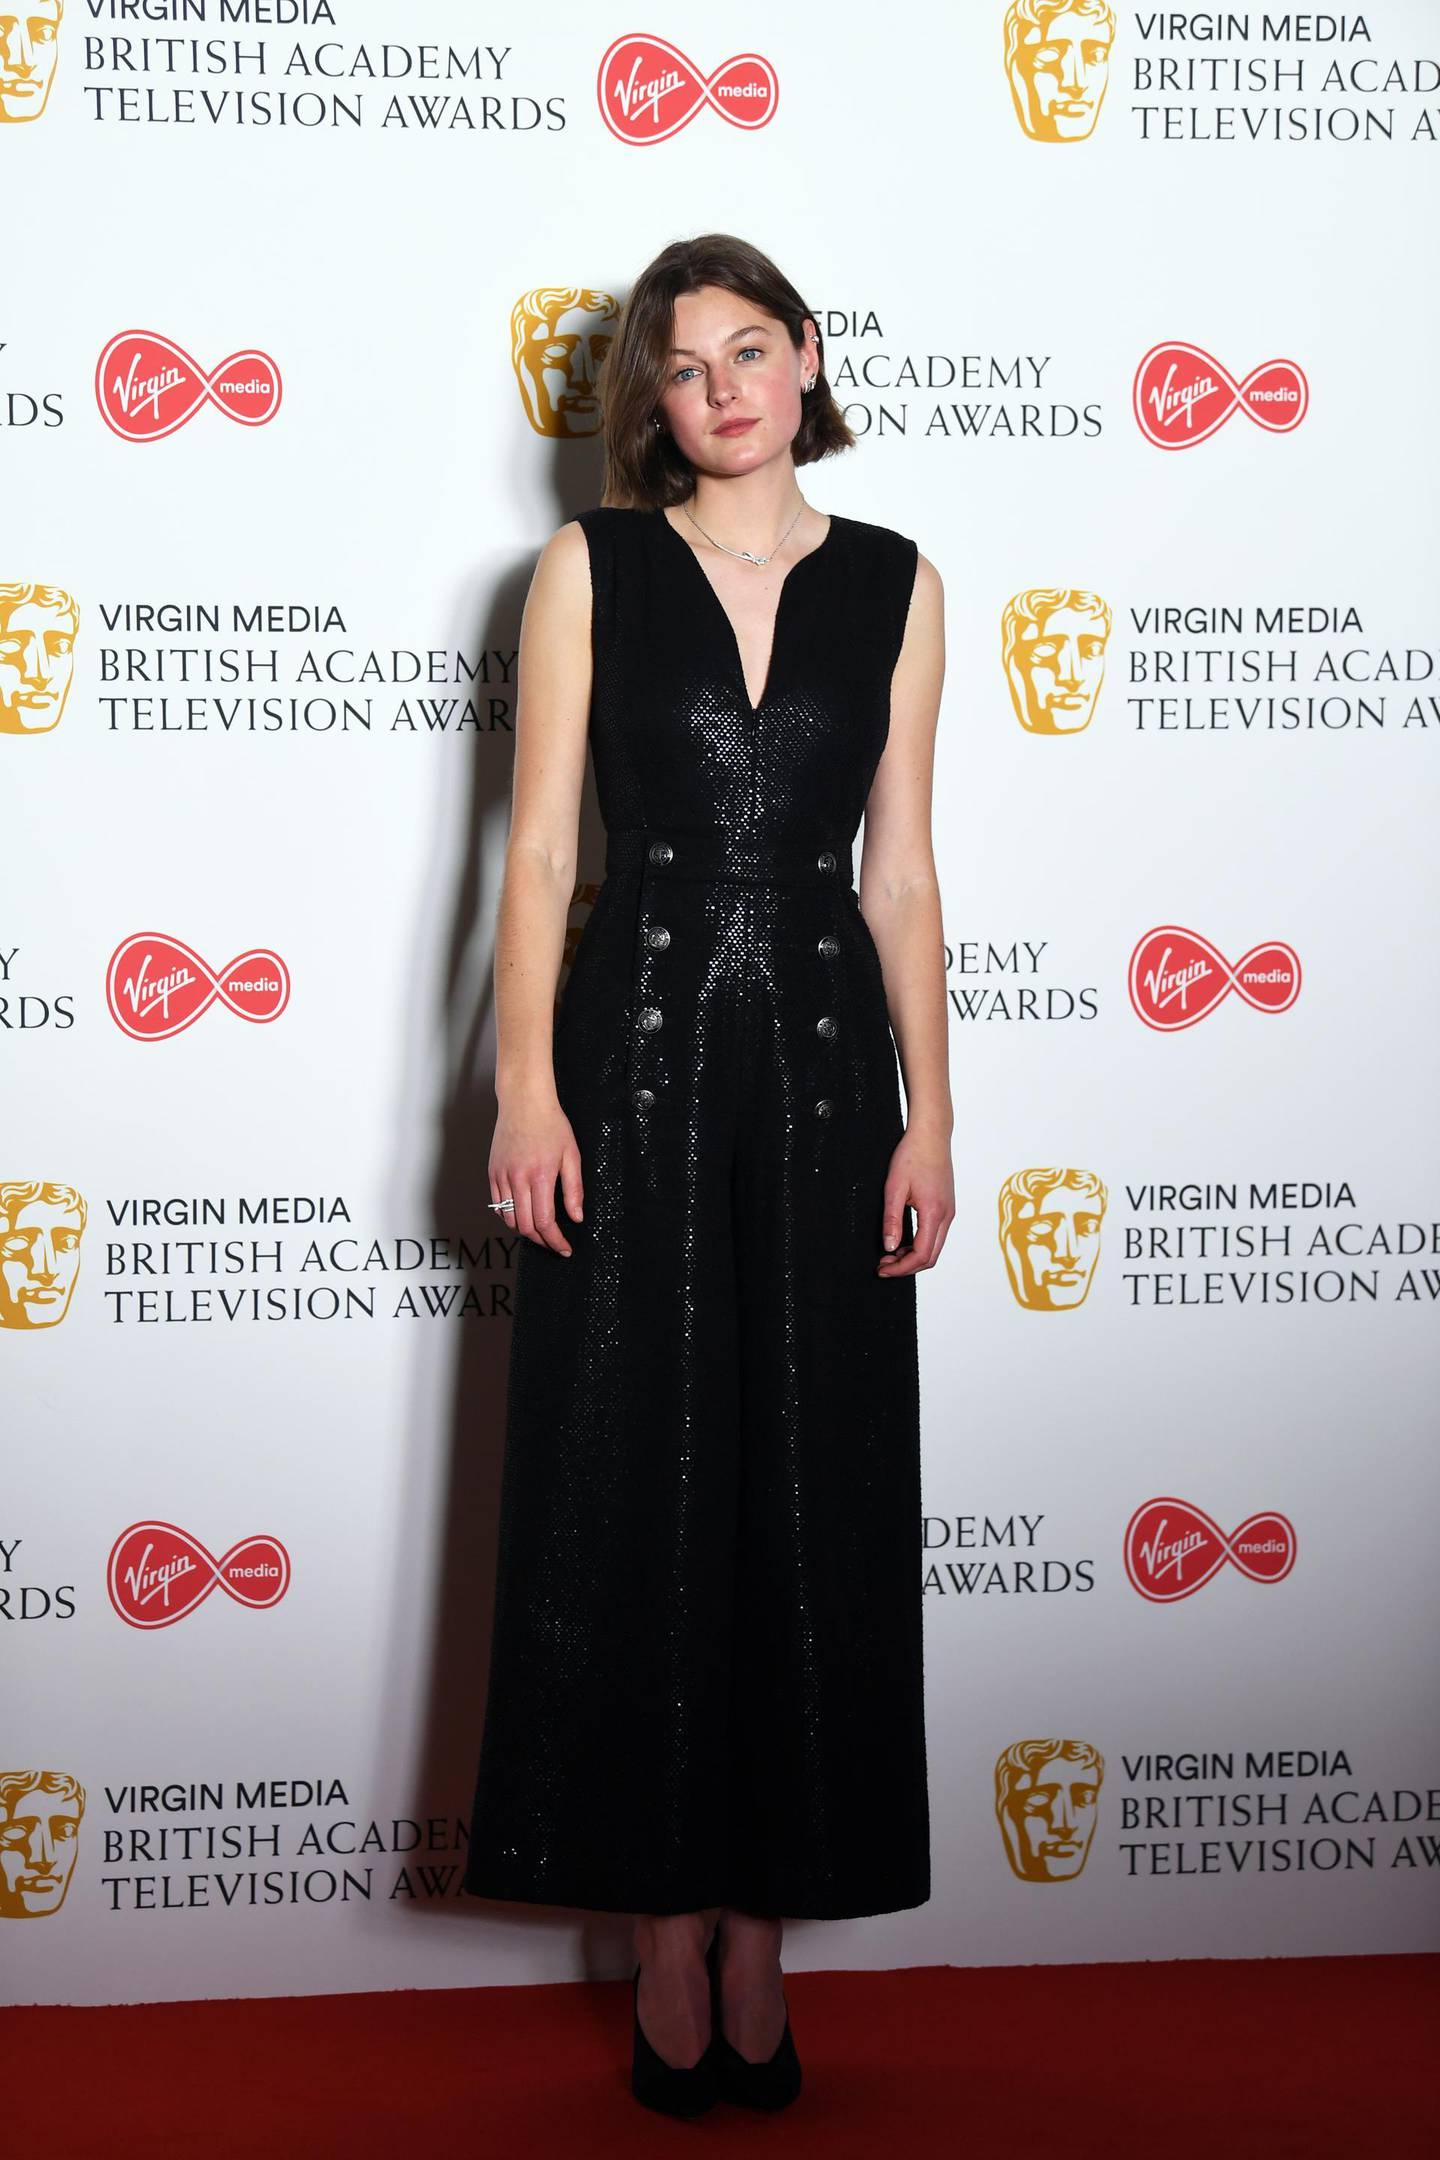 epa07565479 Emma Corrin in the press room at the Virgin Media British Academy Television Awards at the Royal Festival Hall in London, Britain, 12 May 2019. The ceremony is hosted by the British Academy of Film and Television Arts (BAFTA).  EPA-EFE/NEIL HALL